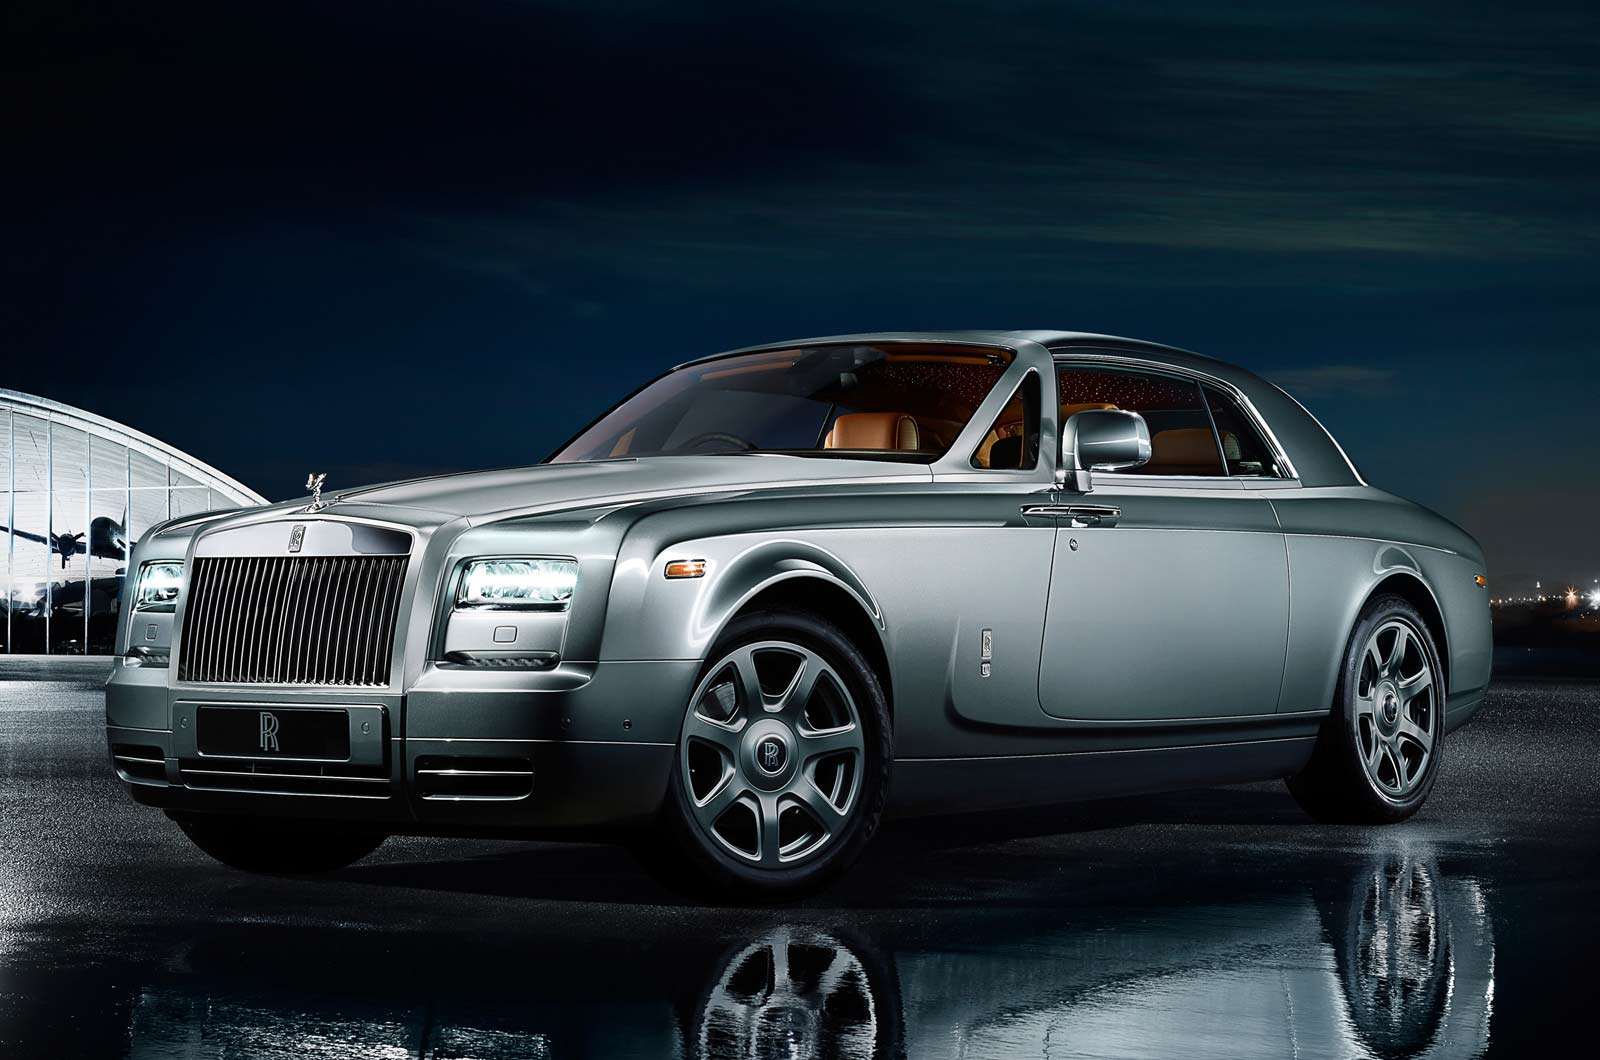 http://3.bp.blogspot.com/-a6VebYQjrDo/USpkFTcDzLI/AAAAAAAARzQ/Q9S1A-vK7OE/s1600/rolls-royce-phantom-coupe-aviator-collection-11.jpg